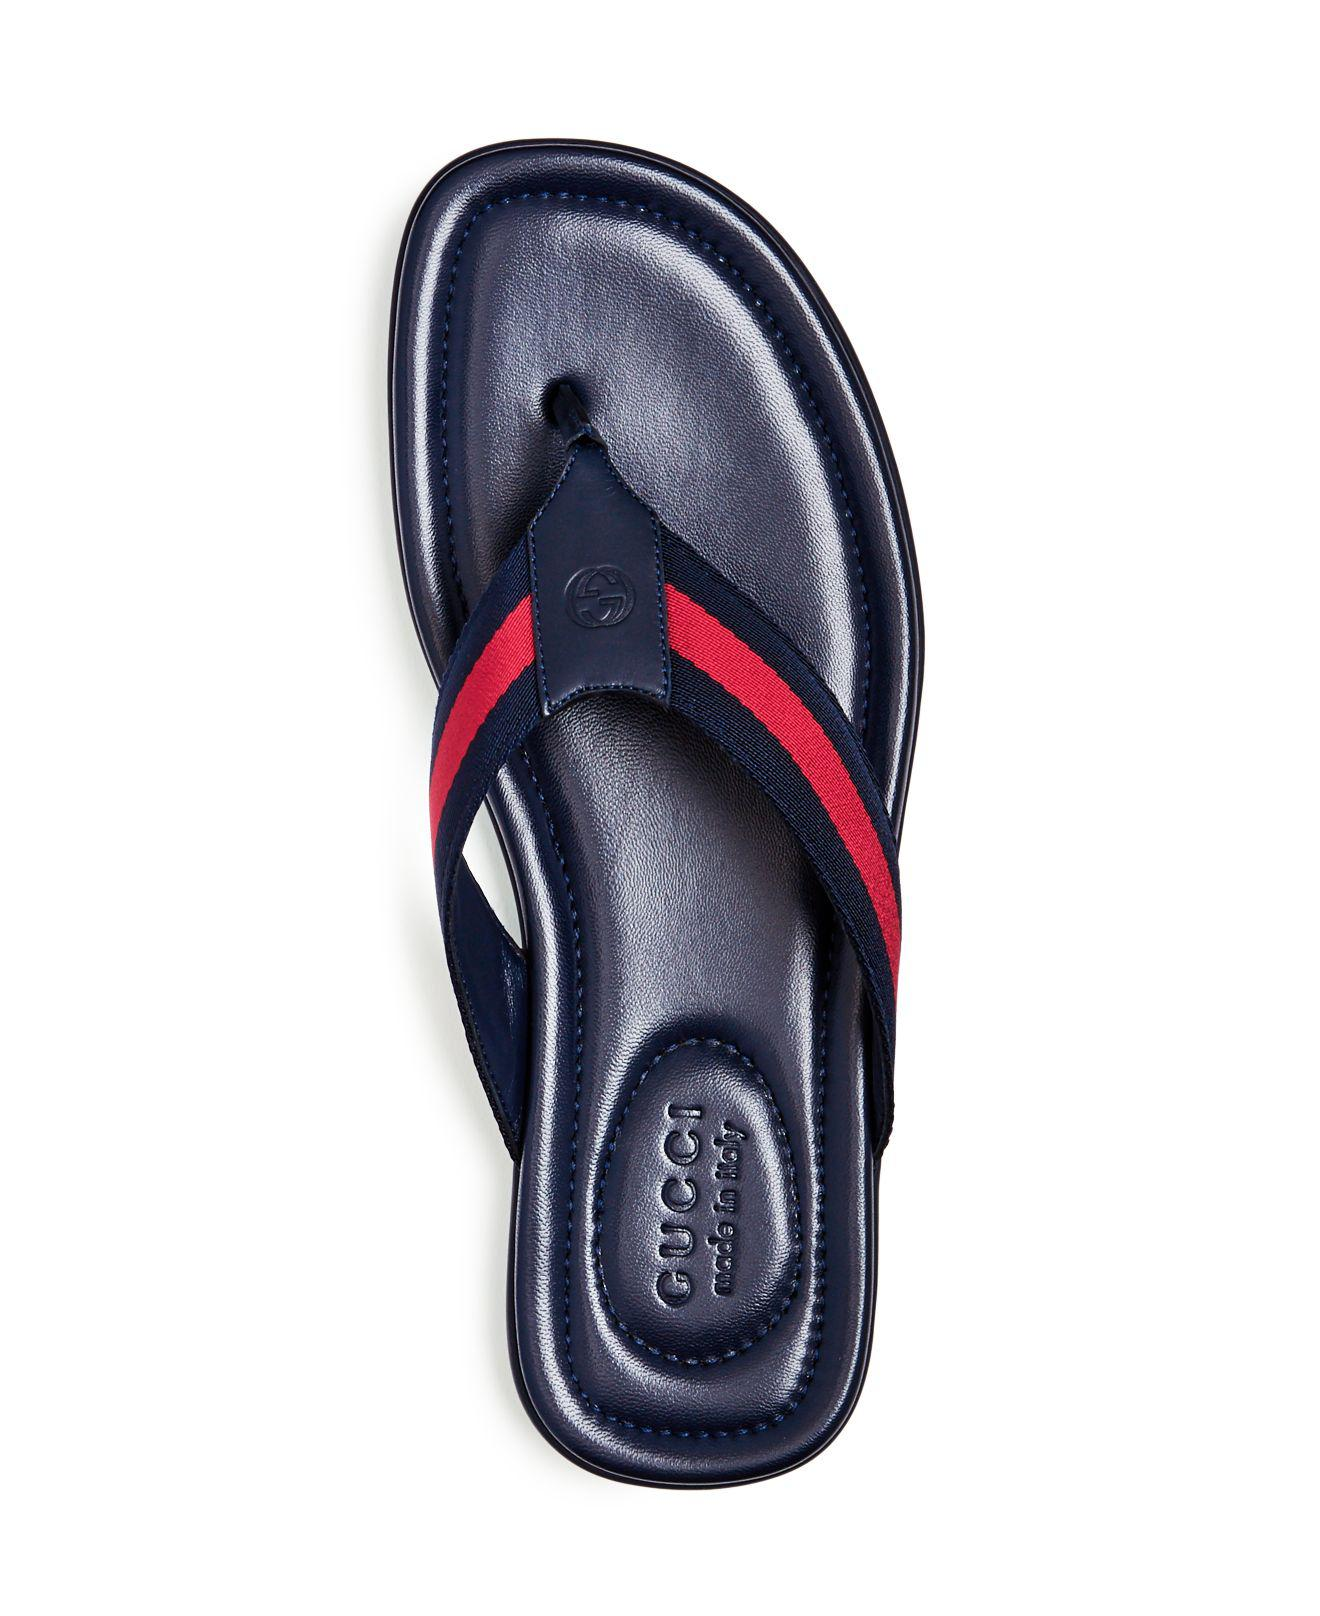 185a65e9f652 Lyst - Gucci Men s Titan Thong Sandals in Blue for Men